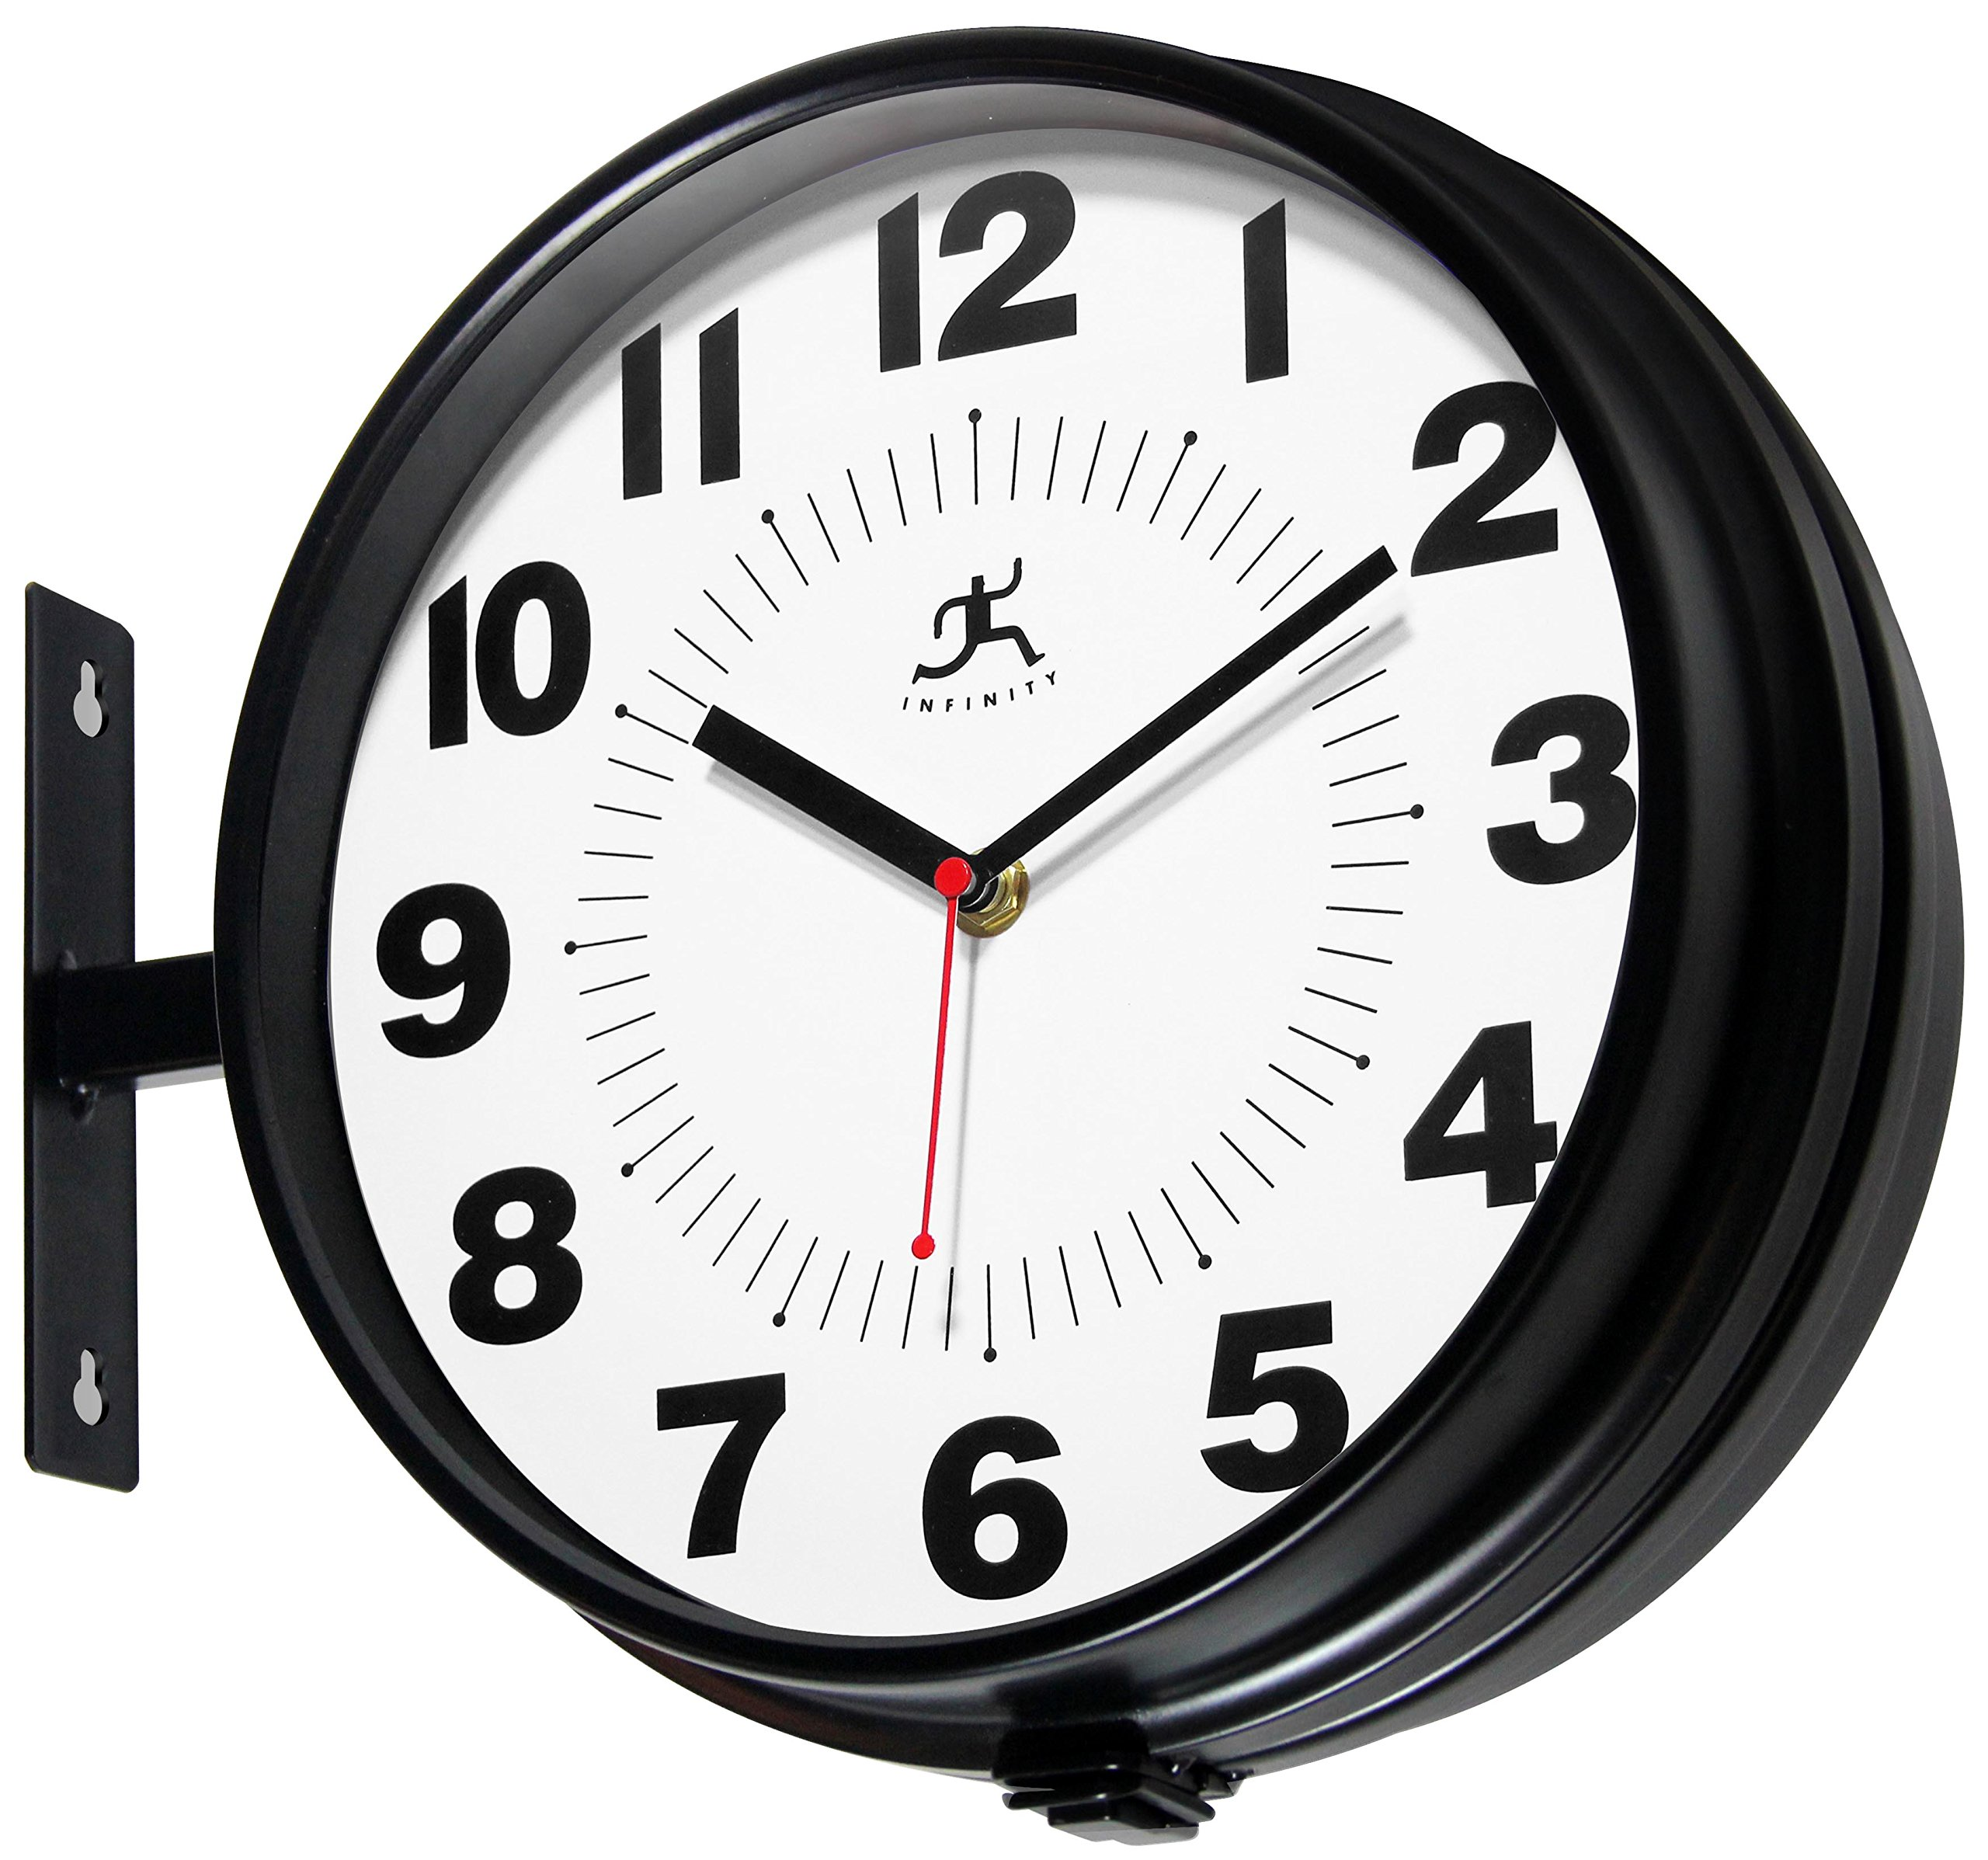 Infinity Instruments Hallway Clock, Black - 11Round, 13with Hanging bracket Adjustable dials for wall or Ceiling mounting Uses 2 AA batteries (not included) - wall-clocks, living-room-decor, living-room - 91kRTYZtozL -